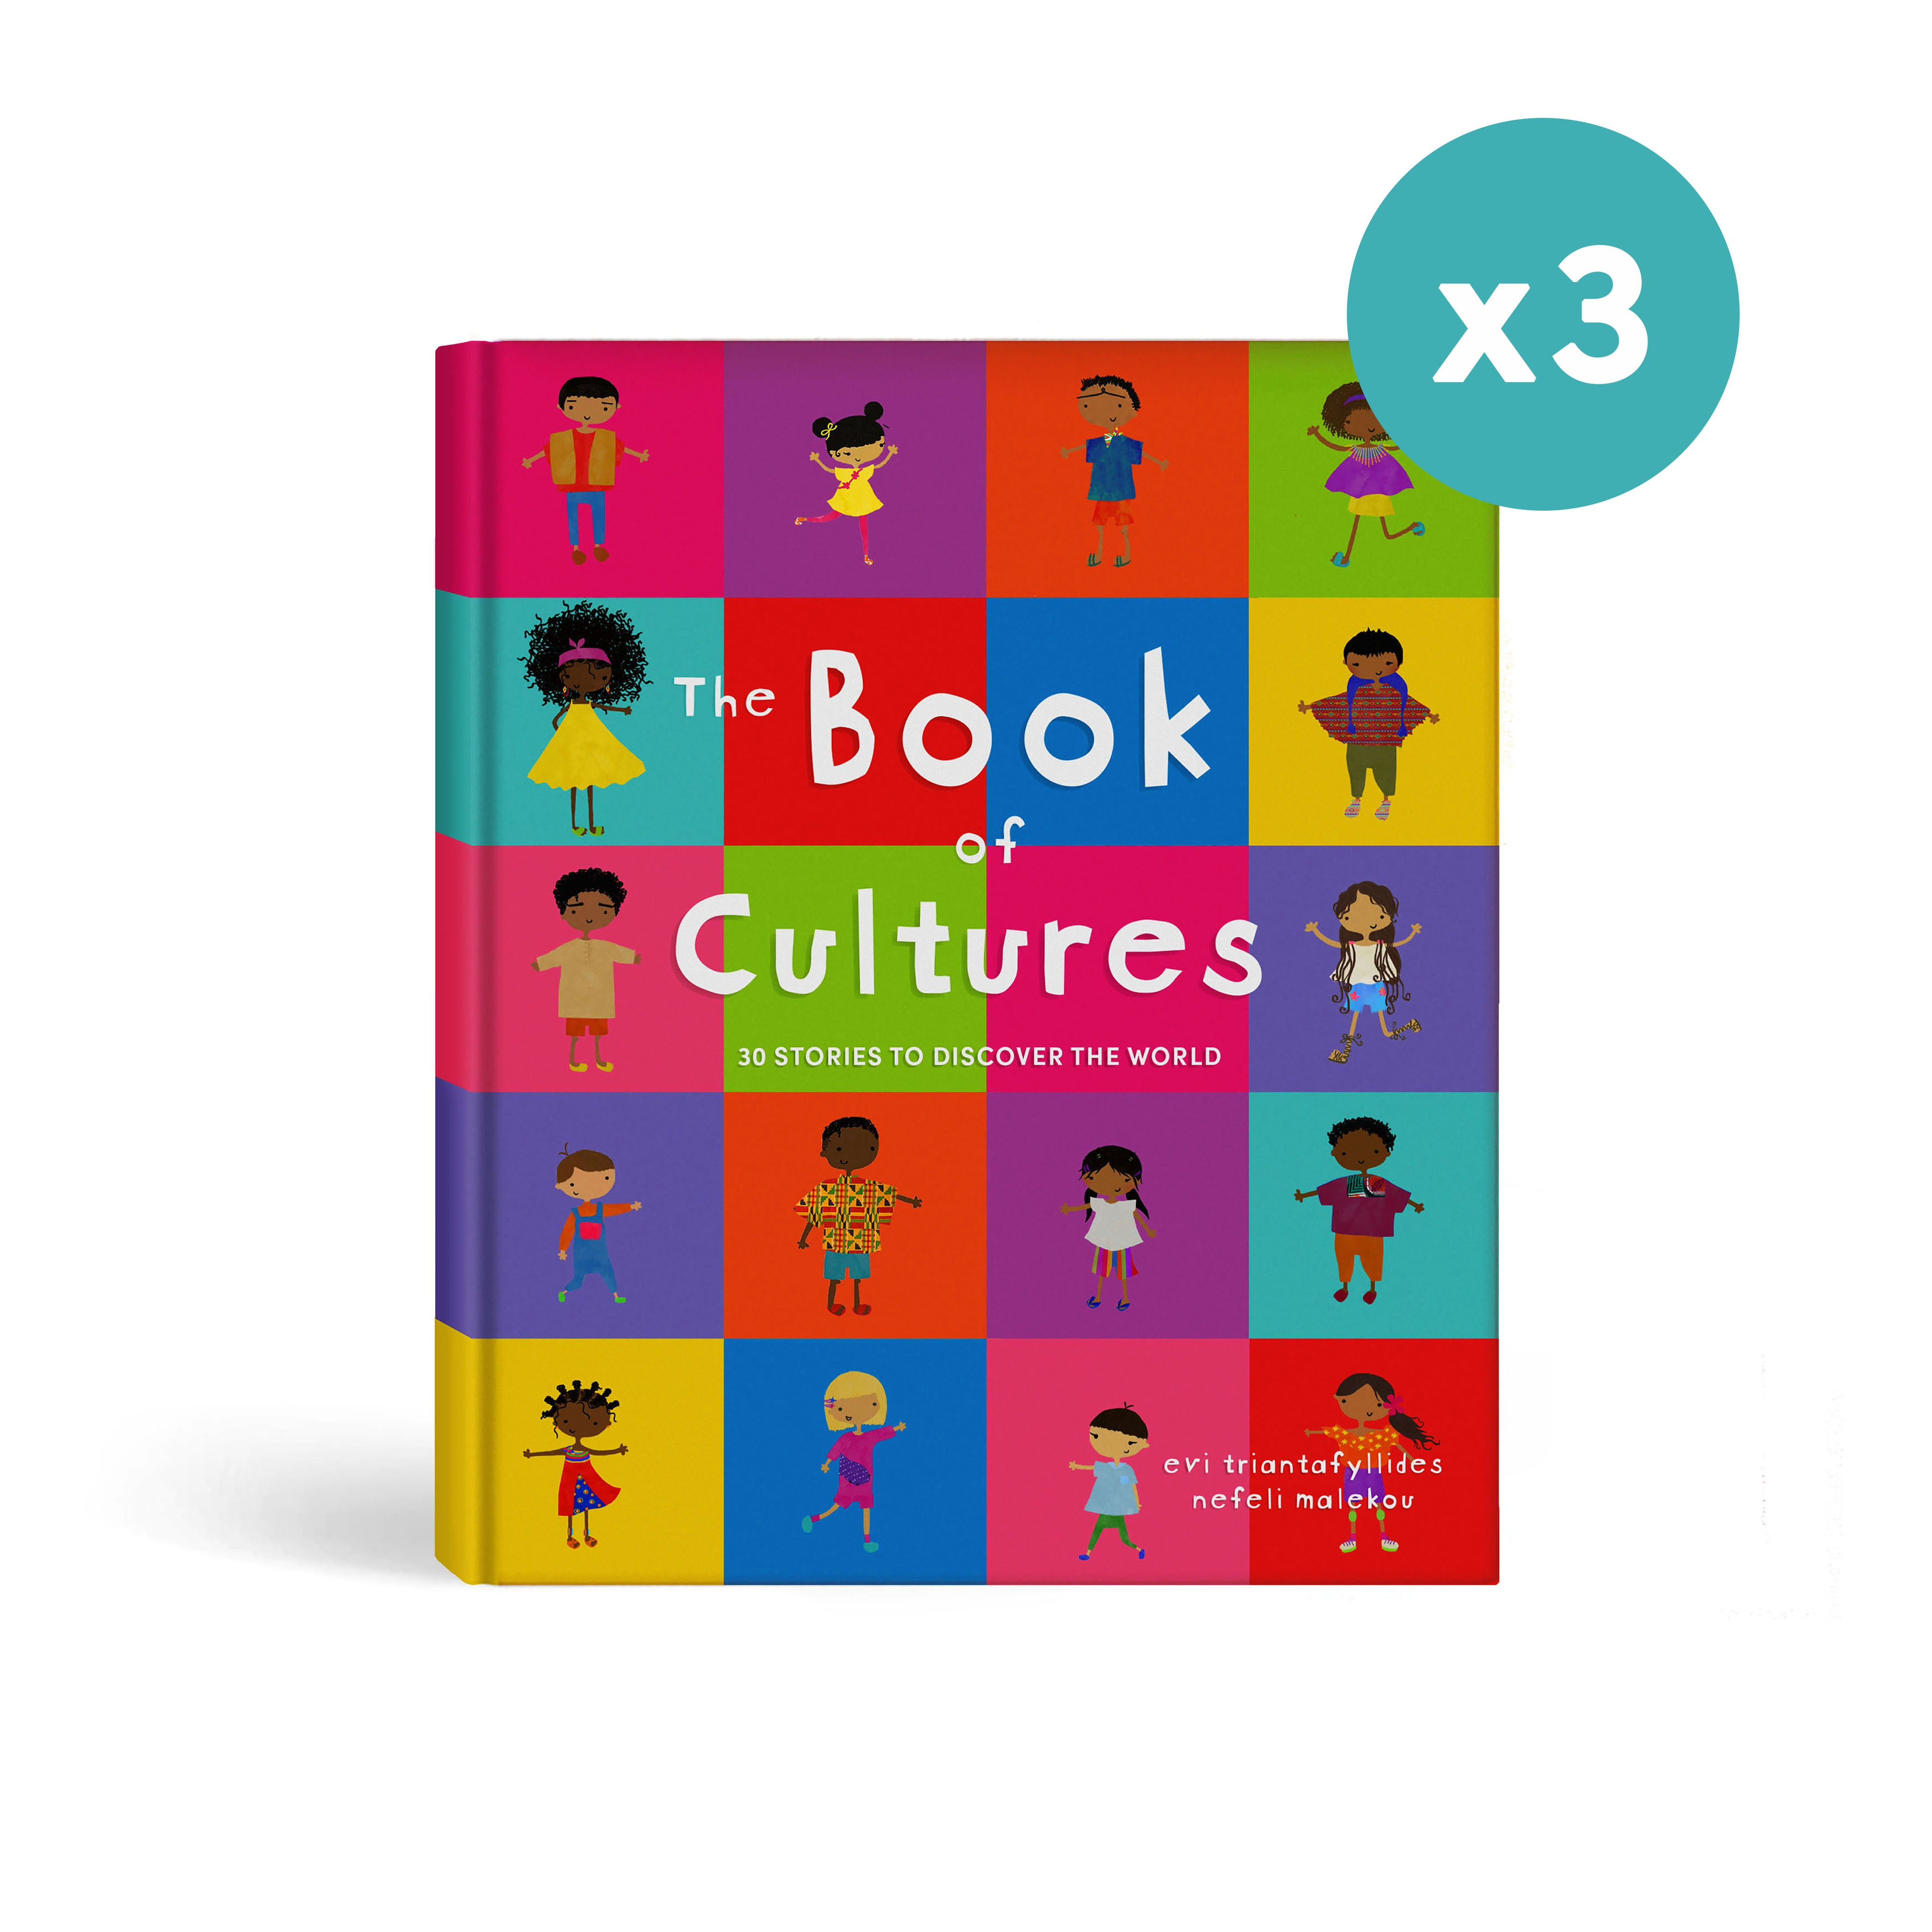 3 x The Book of Cultures